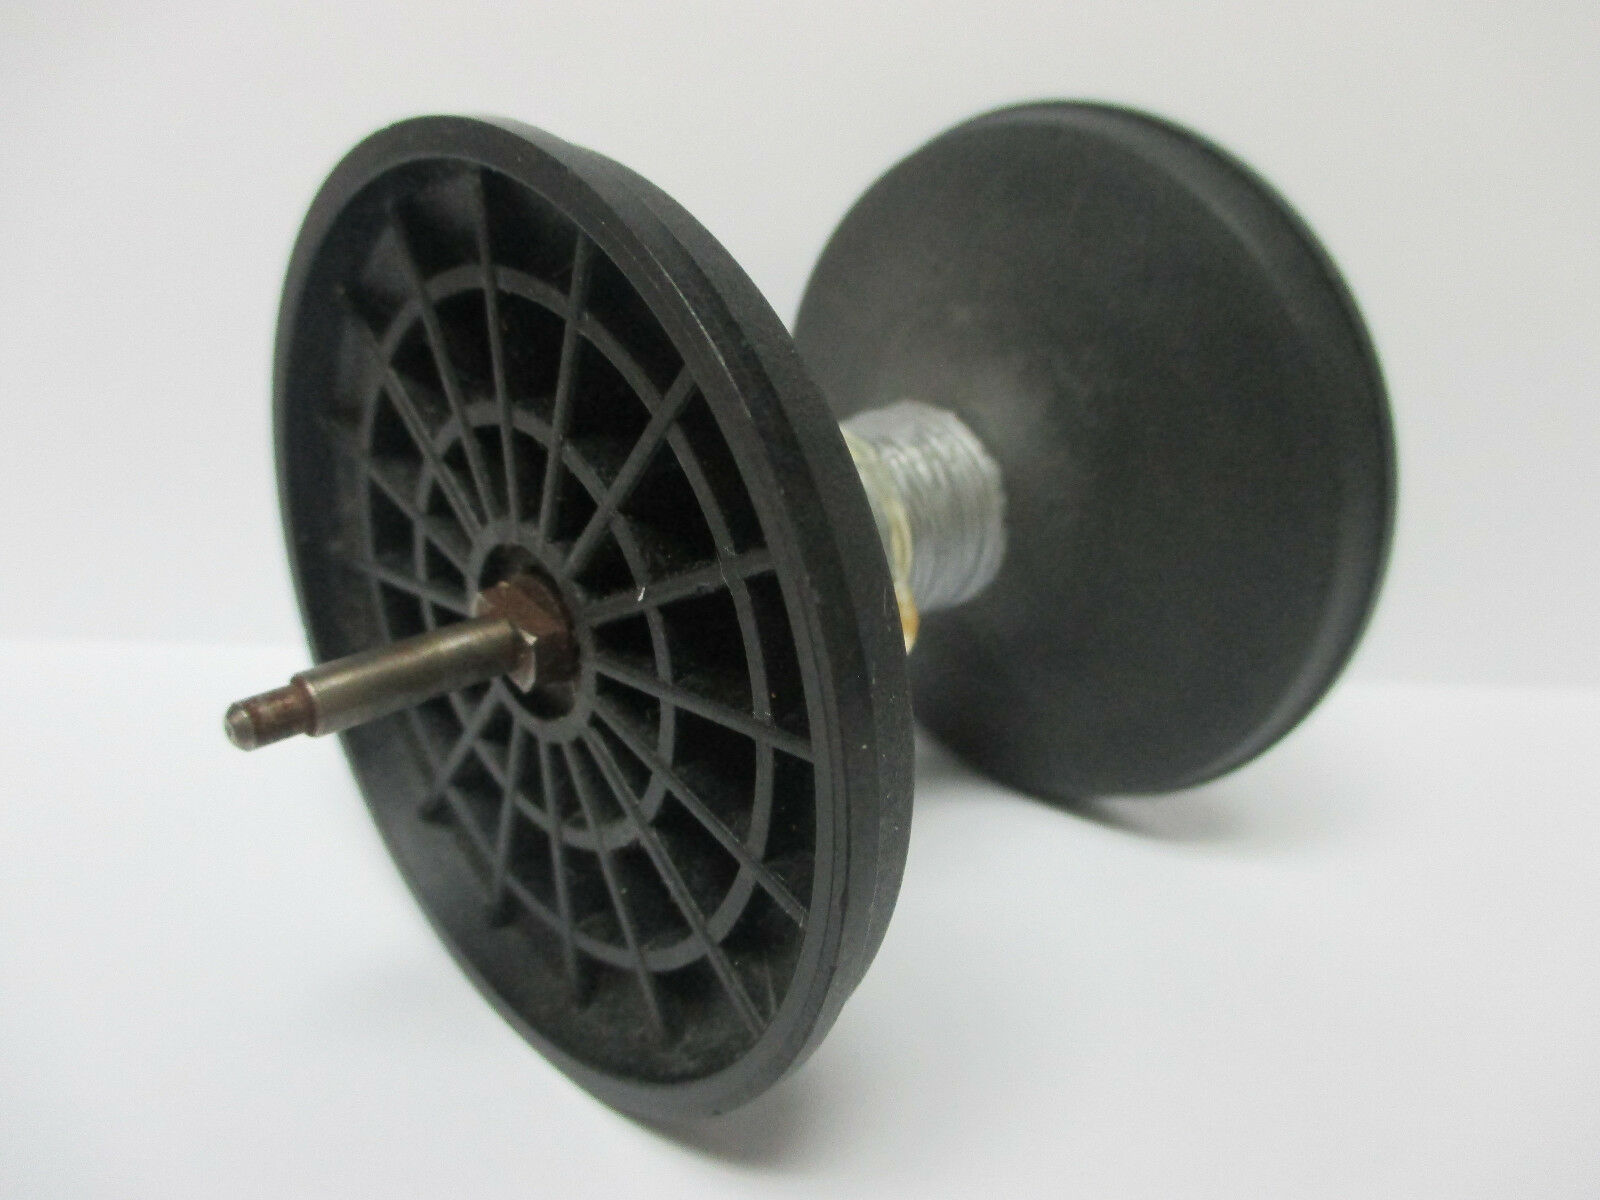 USED NEWELL CONVENTIONAL REEL PART - S 533 5.5 - Spool Assembly  G